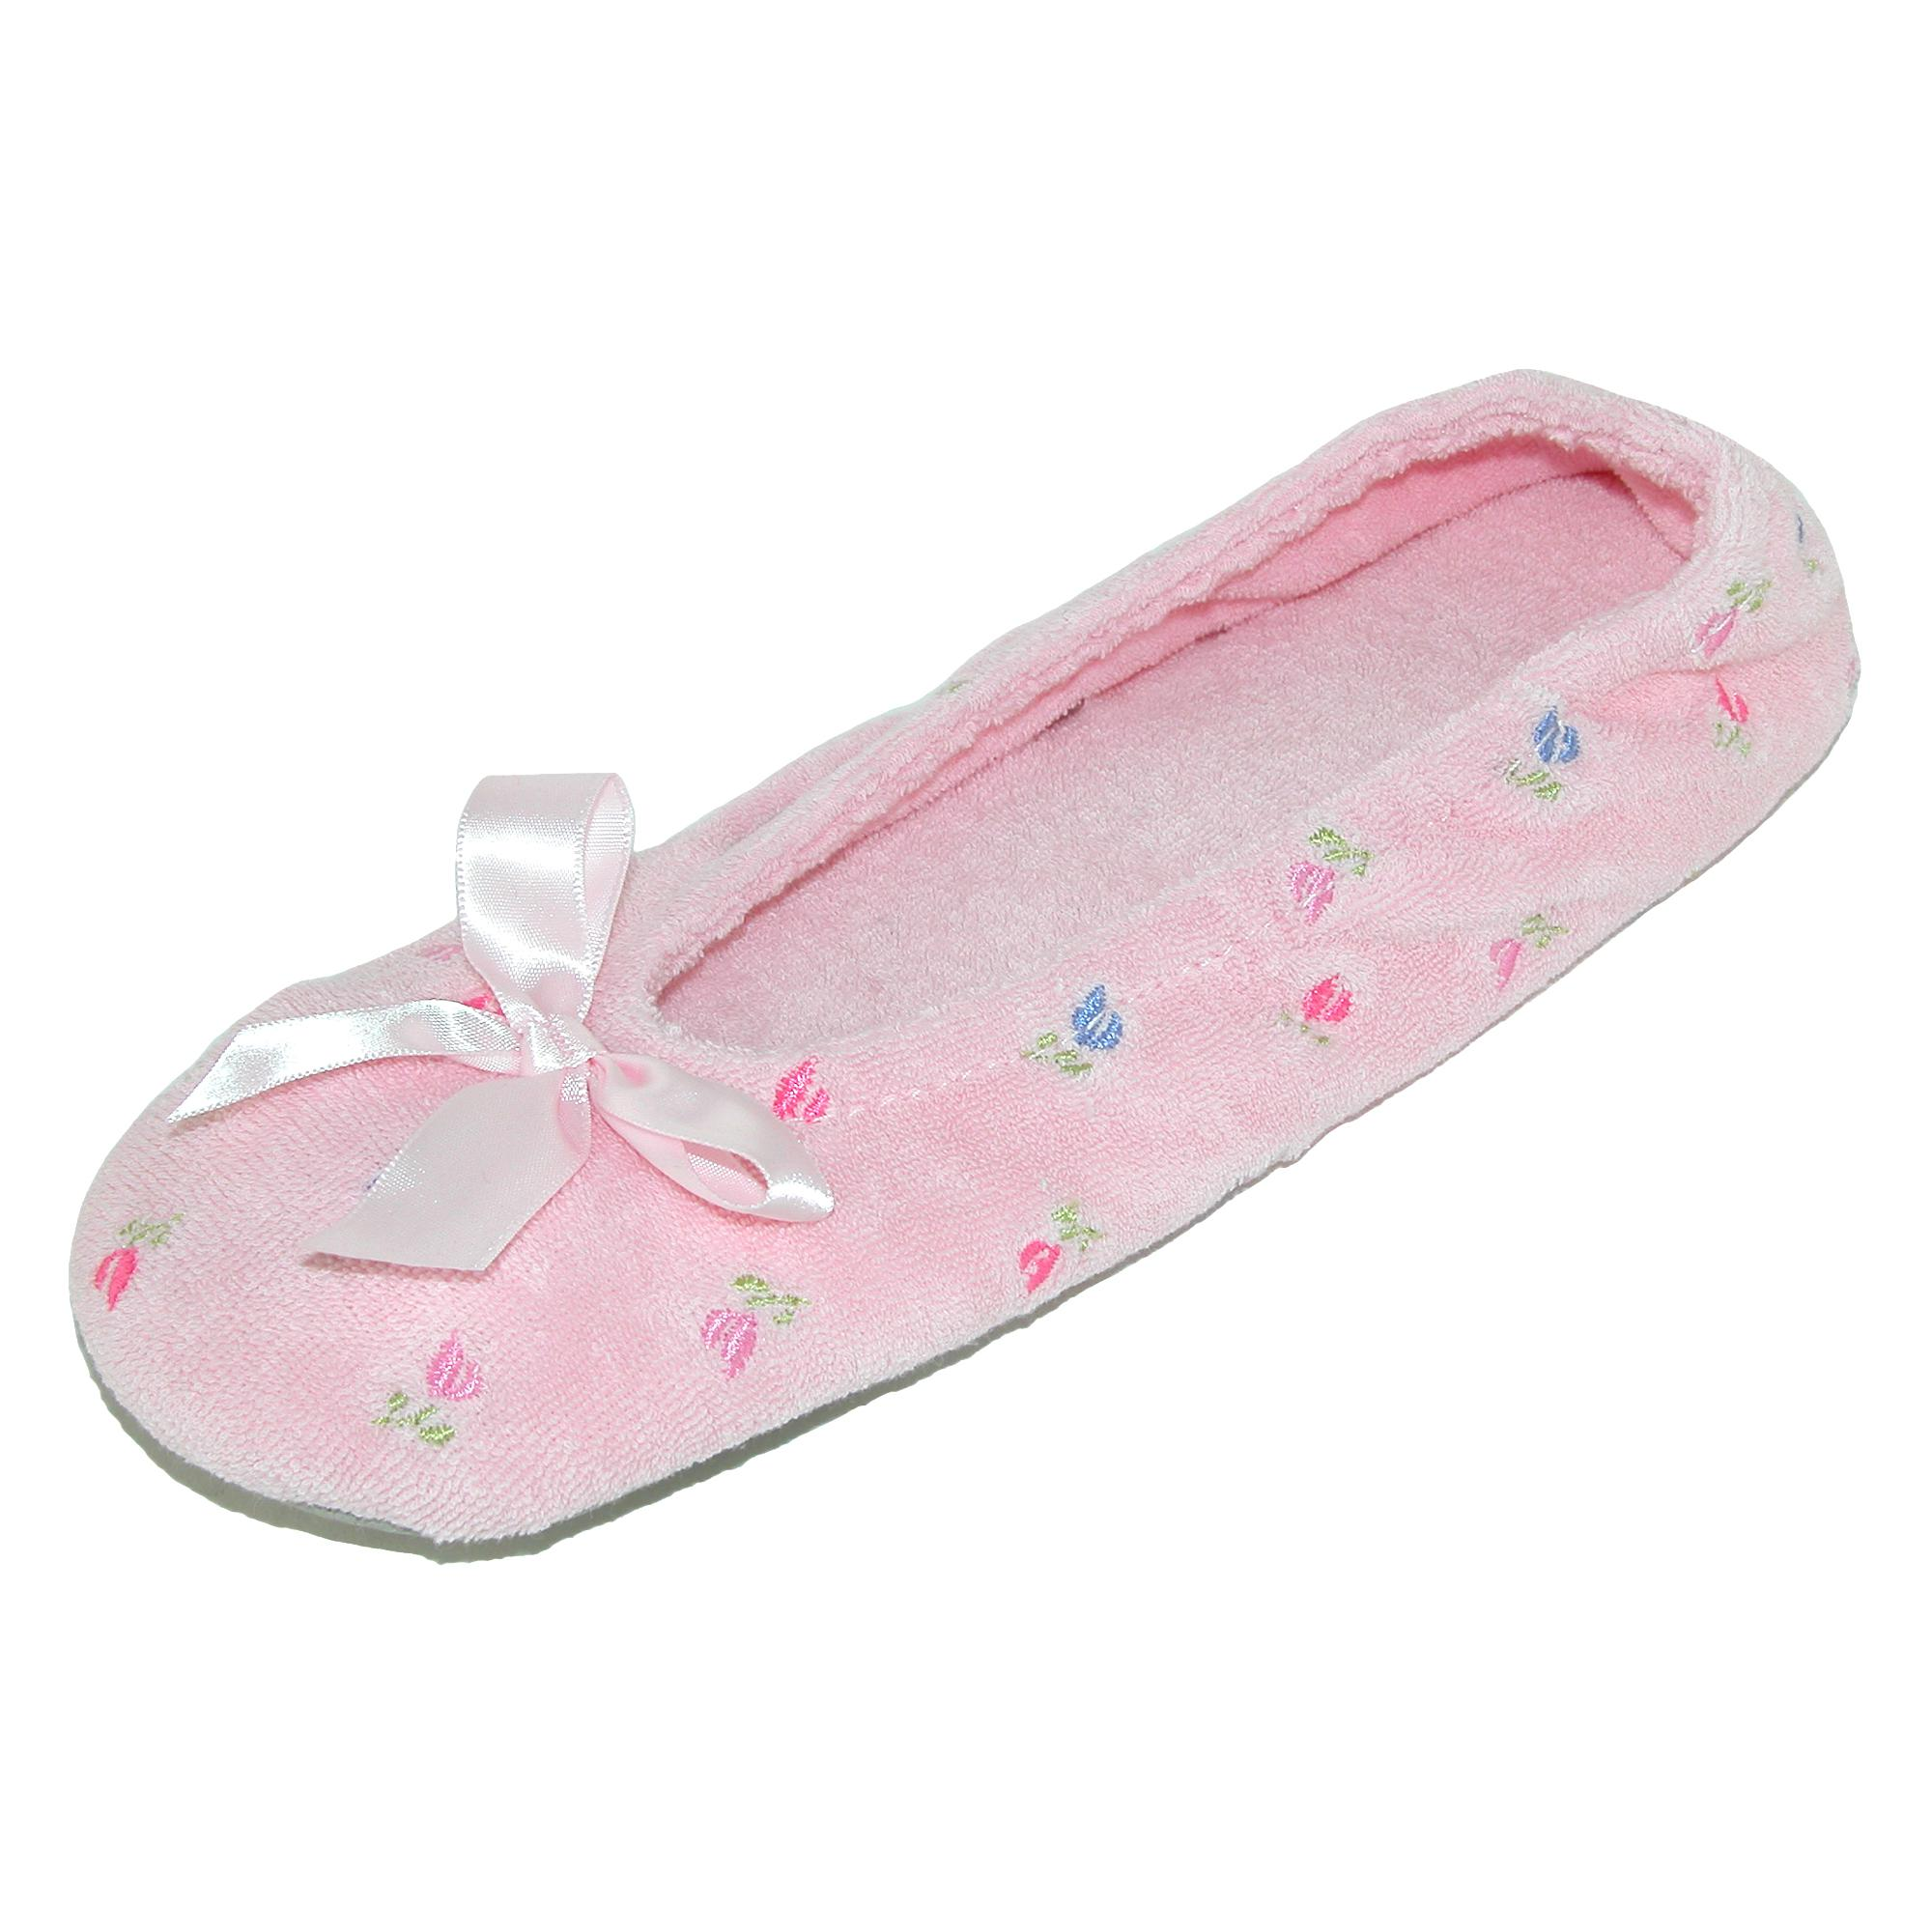 2a5140f734f Totes isotoner Womens Embroidered Terry Ballerina Slippers XLarge ...